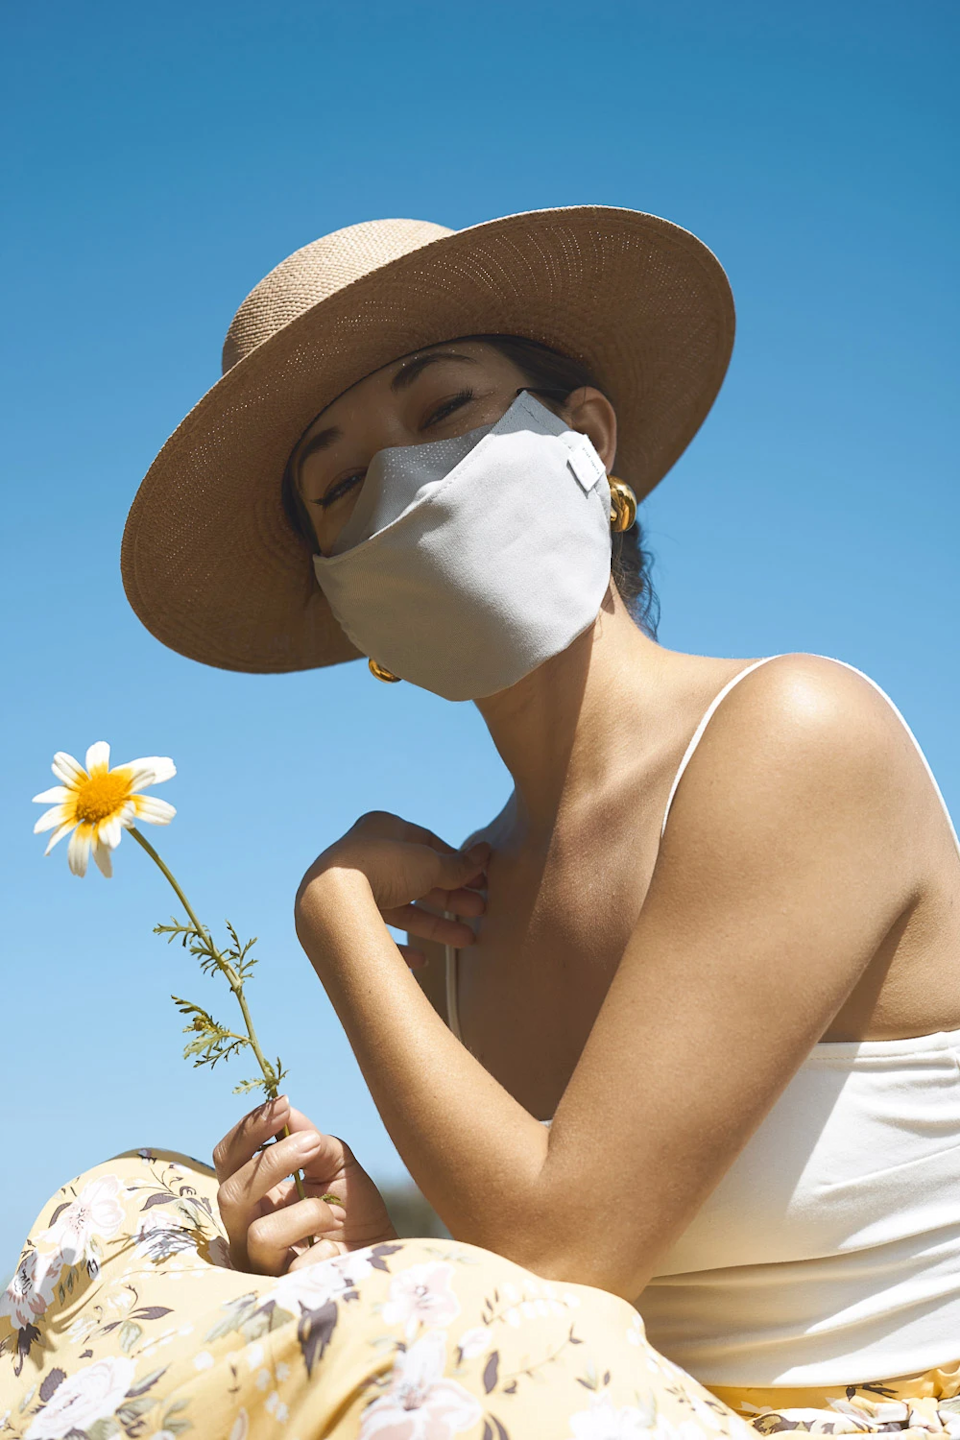 """<h3><a href=""""https://fave.co/2W4Tzjb"""" rel=""""nofollow noopener"""" target=""""_blank"""" data-ylk=""""slk:Graf Lantz Anshin Organic Cotton Face Mask"""" class=""""link rapid-noclick-resp"""">Graf Lantz Anshin Organic Cotton Face Mask</a></h3><br>All Graf Lantz masks have been handmade in Los Angeles from premium-quality, 100% organic cotton twill. The fabric is eco-friendly and sustainably processed throughout dyeing and finishing. <br><br><strong>Graf Lantz</strong> Anshin Organic Cotton Face Mask - Ear Band, $, available at <a href=""""https://go.skimresources.com/?id=30283X879131&url=https%3A%2F%2Fgraf-lantz.com%2Fproducts%2Fanshin-organic-cotton-face-mask-ear-band-1"""" rel=""""nofollow noopener"""" target=""""_blank"""" data-ylk=""""slk:Graf Lantz"""" class=""""link rapid-noclick-resp"""">Graf Lantz</a>"""